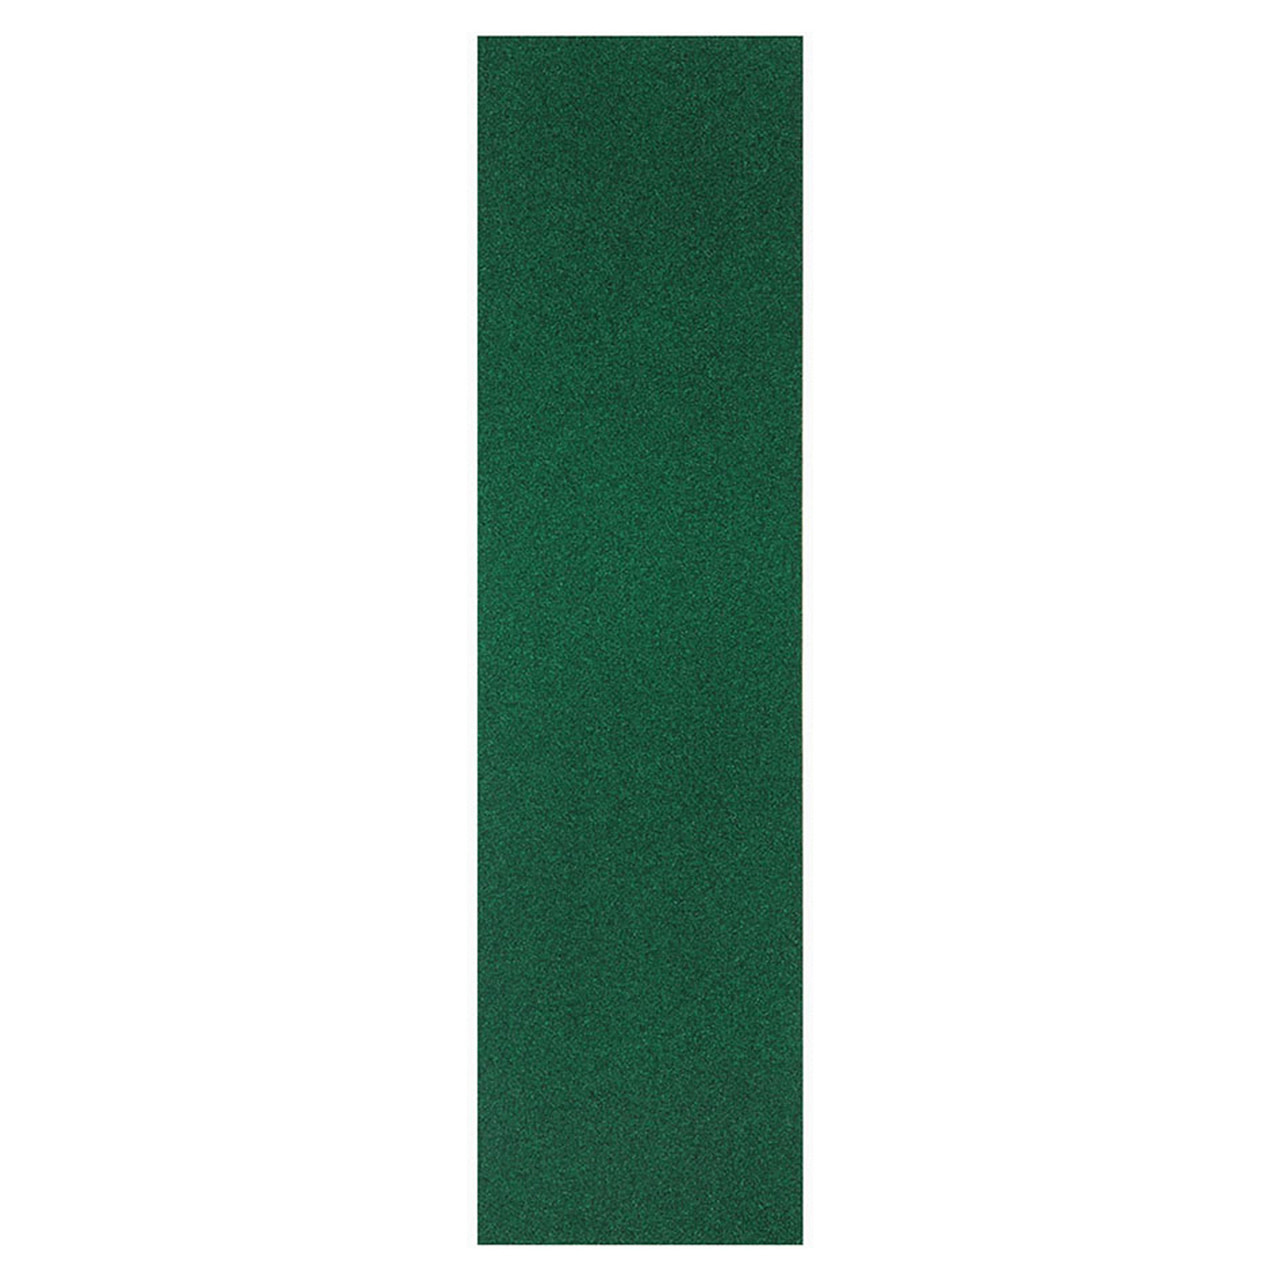 "Jessup Griptape Jessup Grip Sheet Forest Green 9"" x 33"""